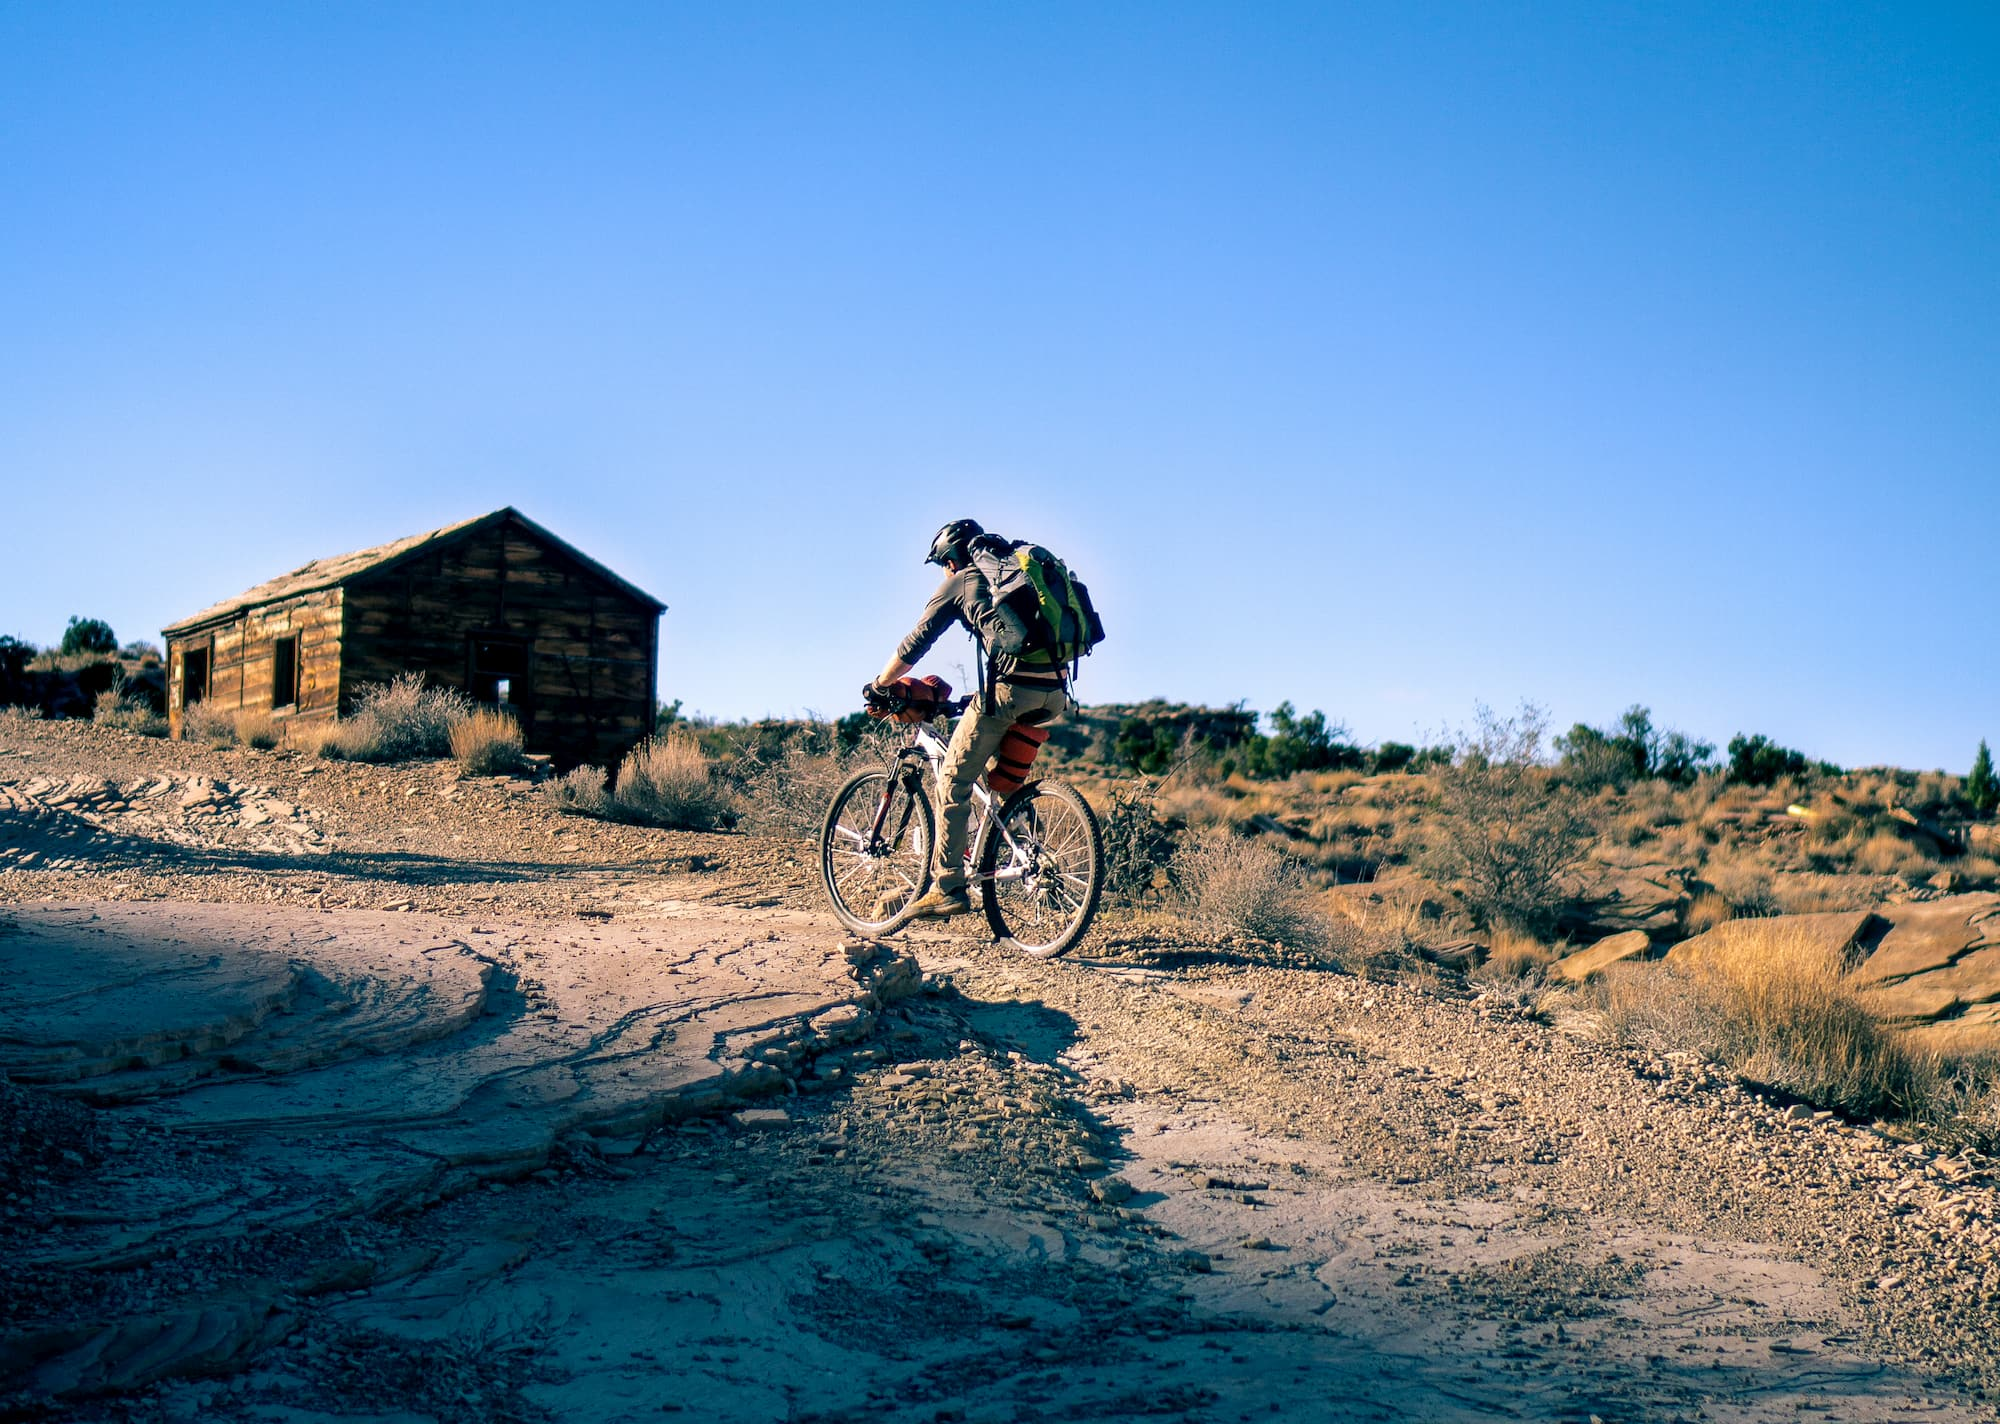 Man riding bike along tail and shelter in background